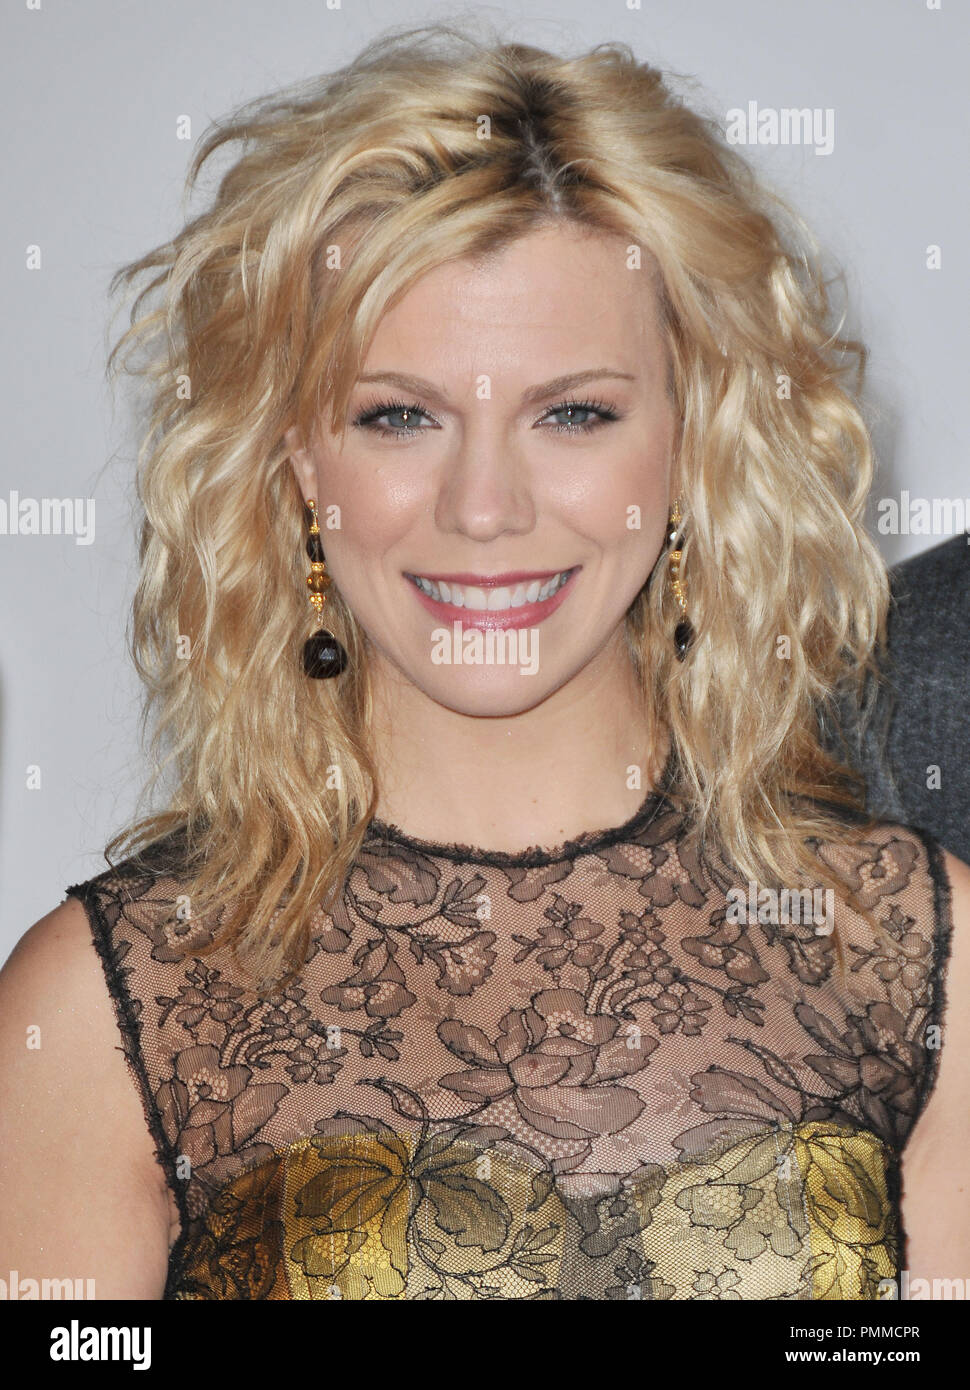 Singer Kimberly Perry of The Band Perry at the arrivals of The 2011 American Music Awards held at the Nokia Theatre L.A. Live in Los Angeles, CA. The event took place on Sunday, November 21, 2011. Photo by PRPP /  PictureLux Stock Photo